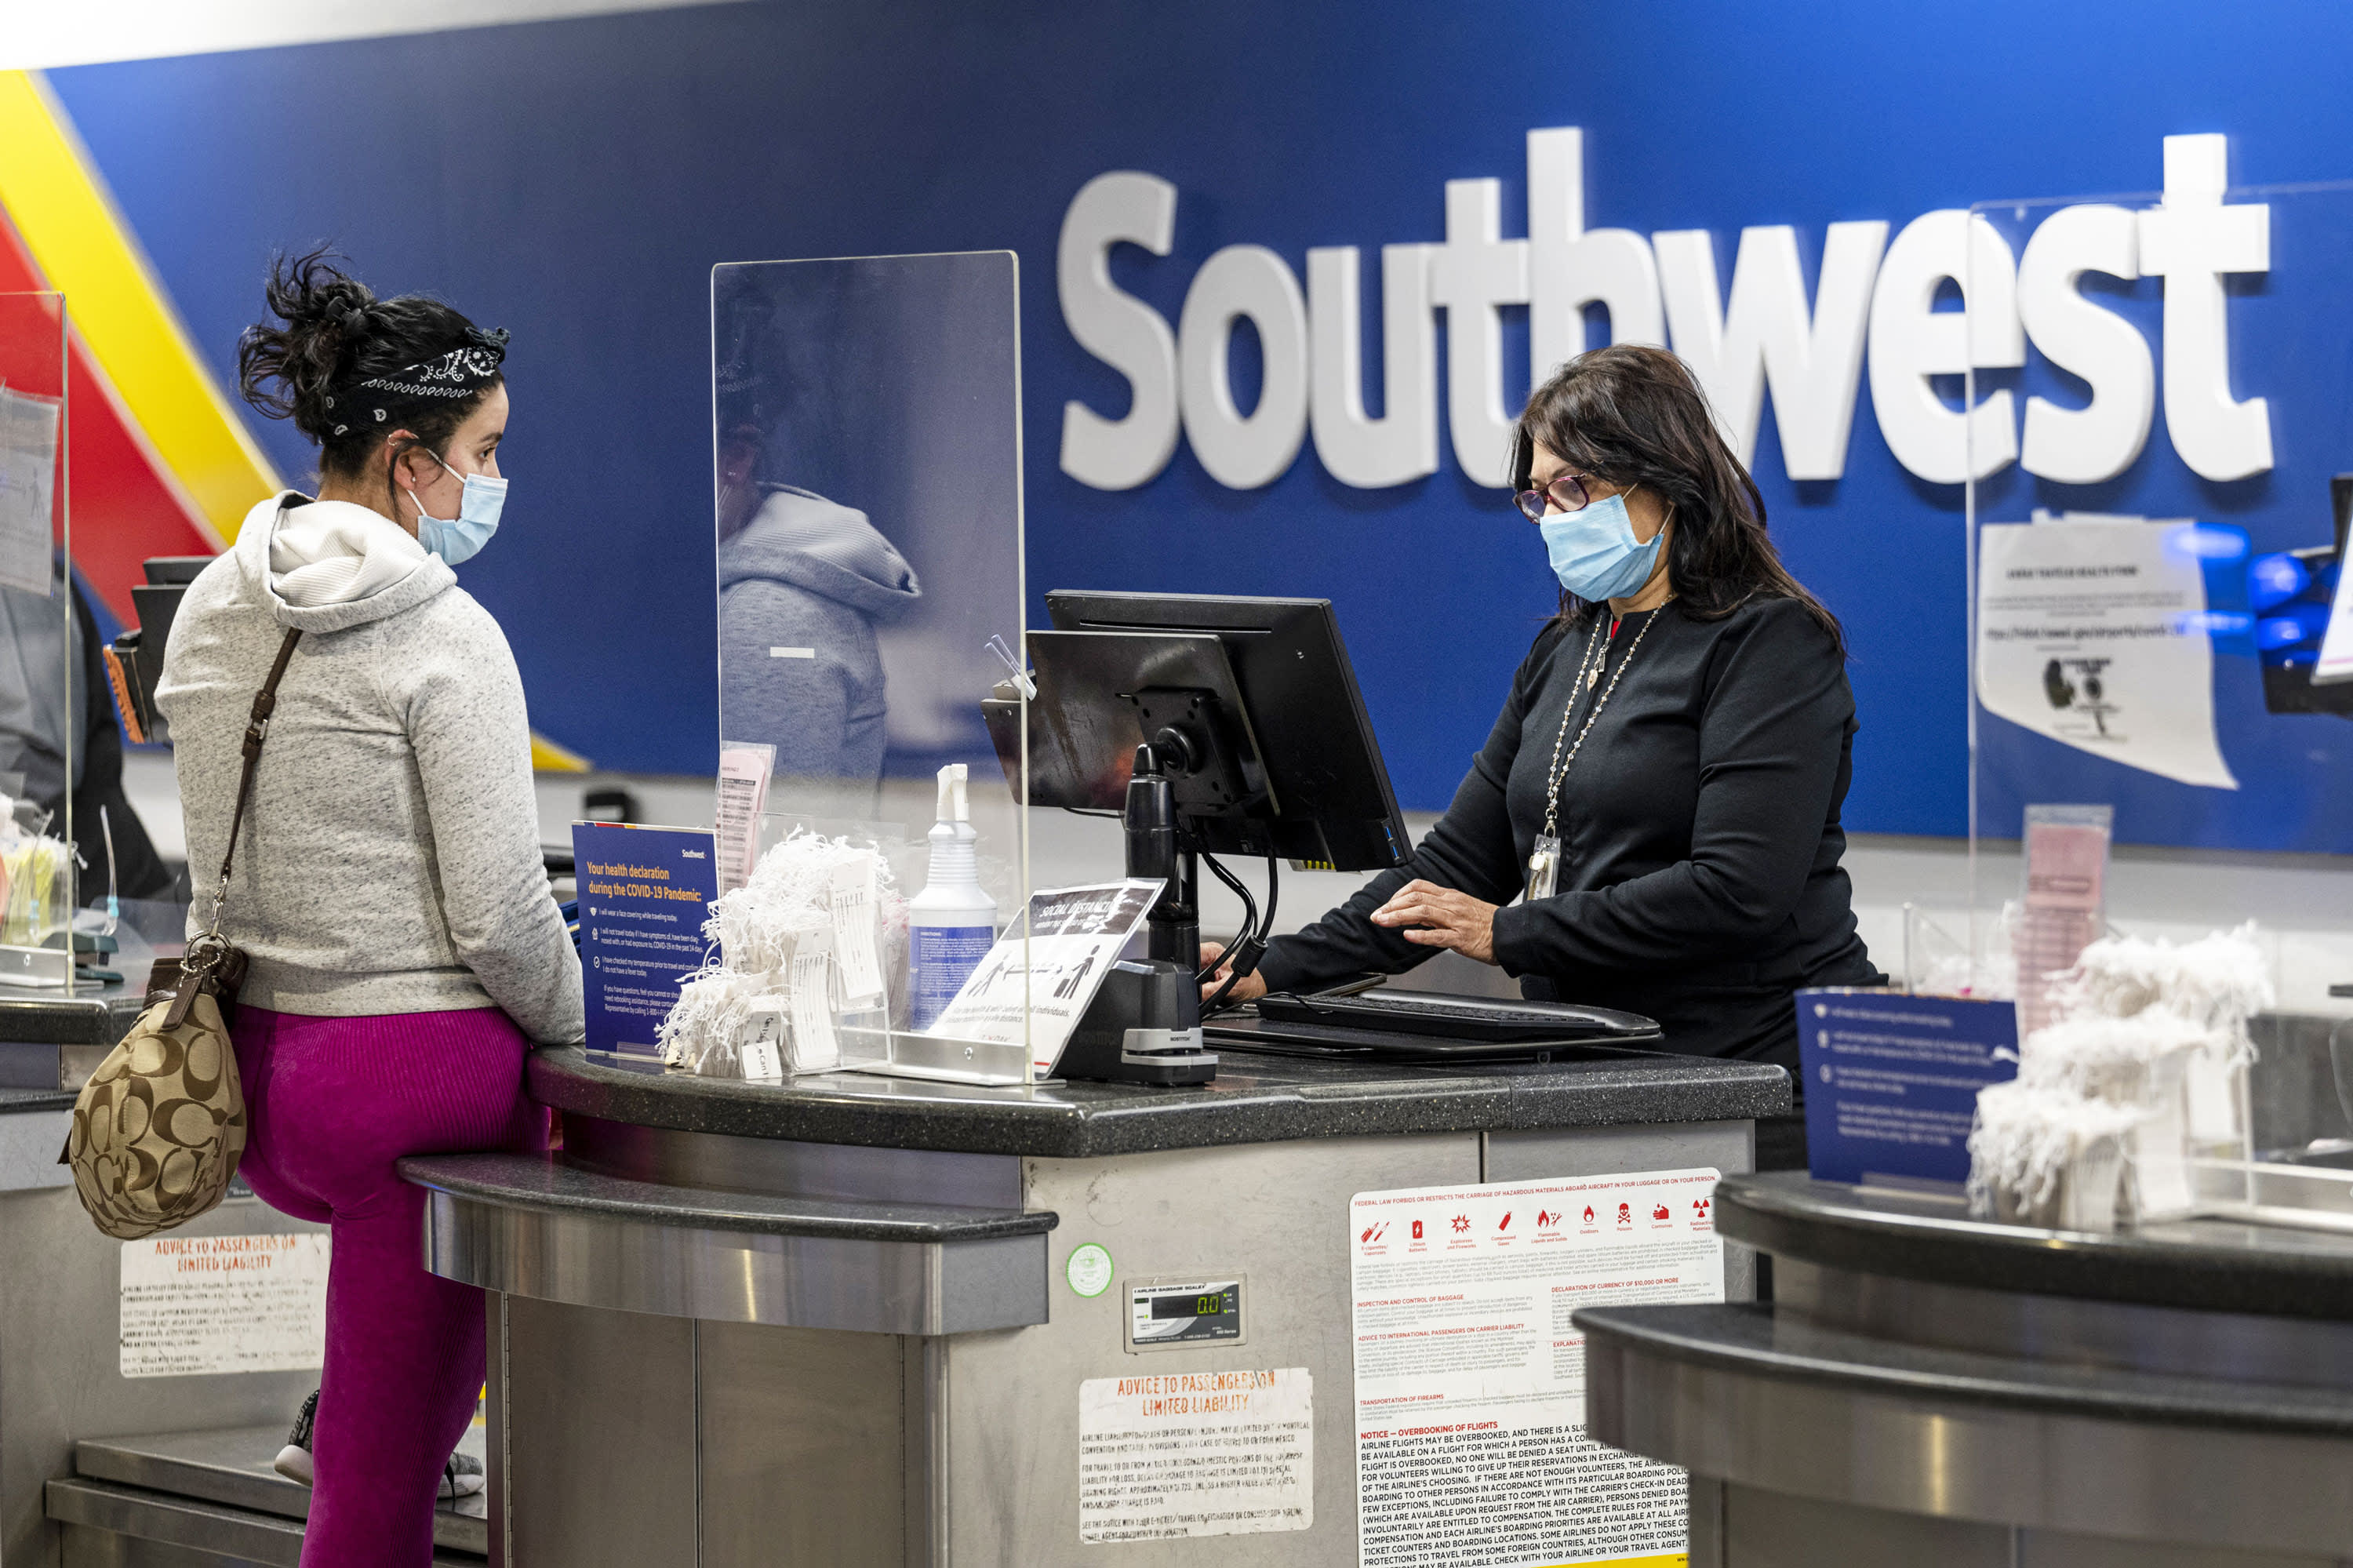 Southwest Airlines says staff must be vaccinated against Covid by Dec. 8 under federal rules – CNBC